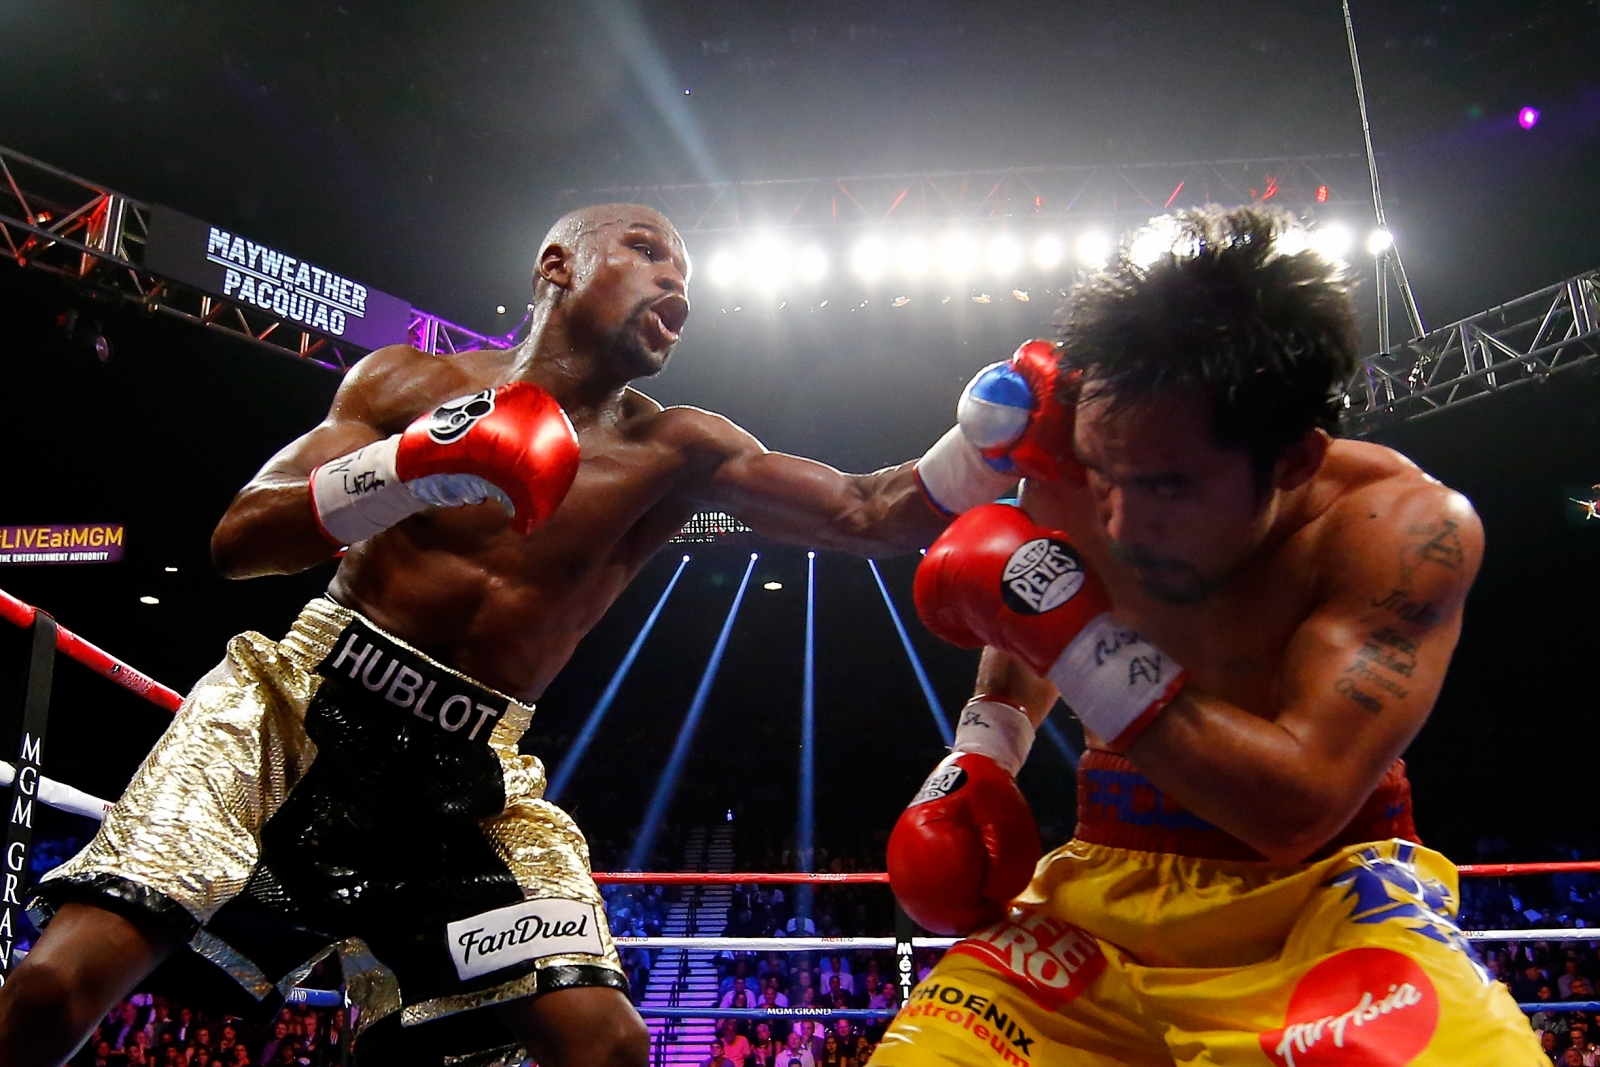 Floyd Mayweather defeats Manny Pacquiao